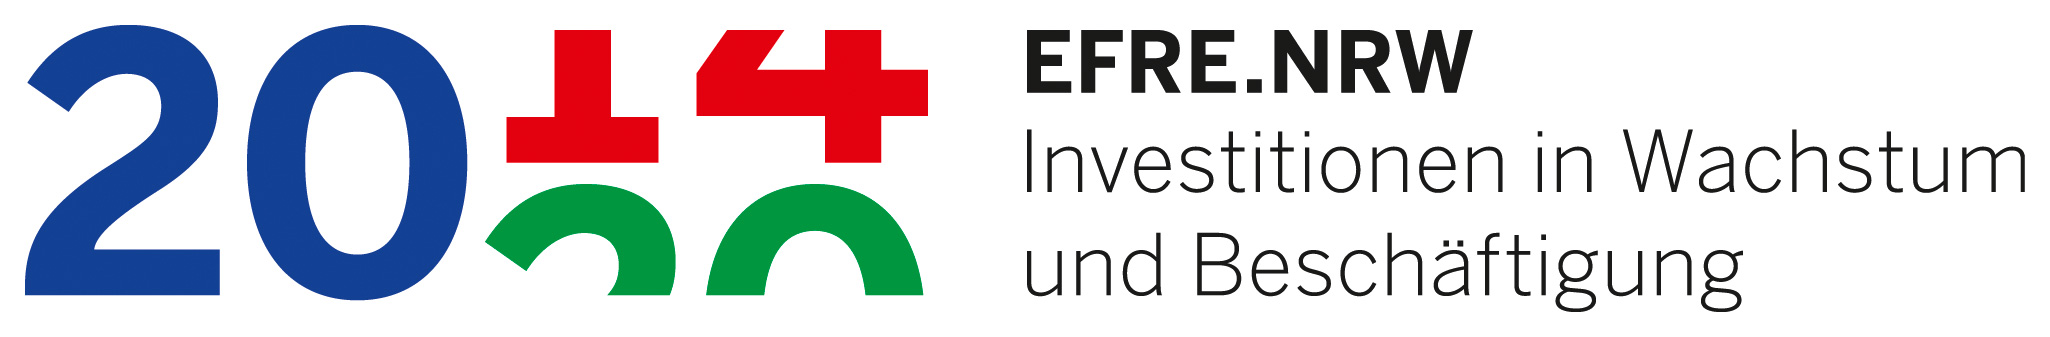 icon of the efre promotion by the government of nrw